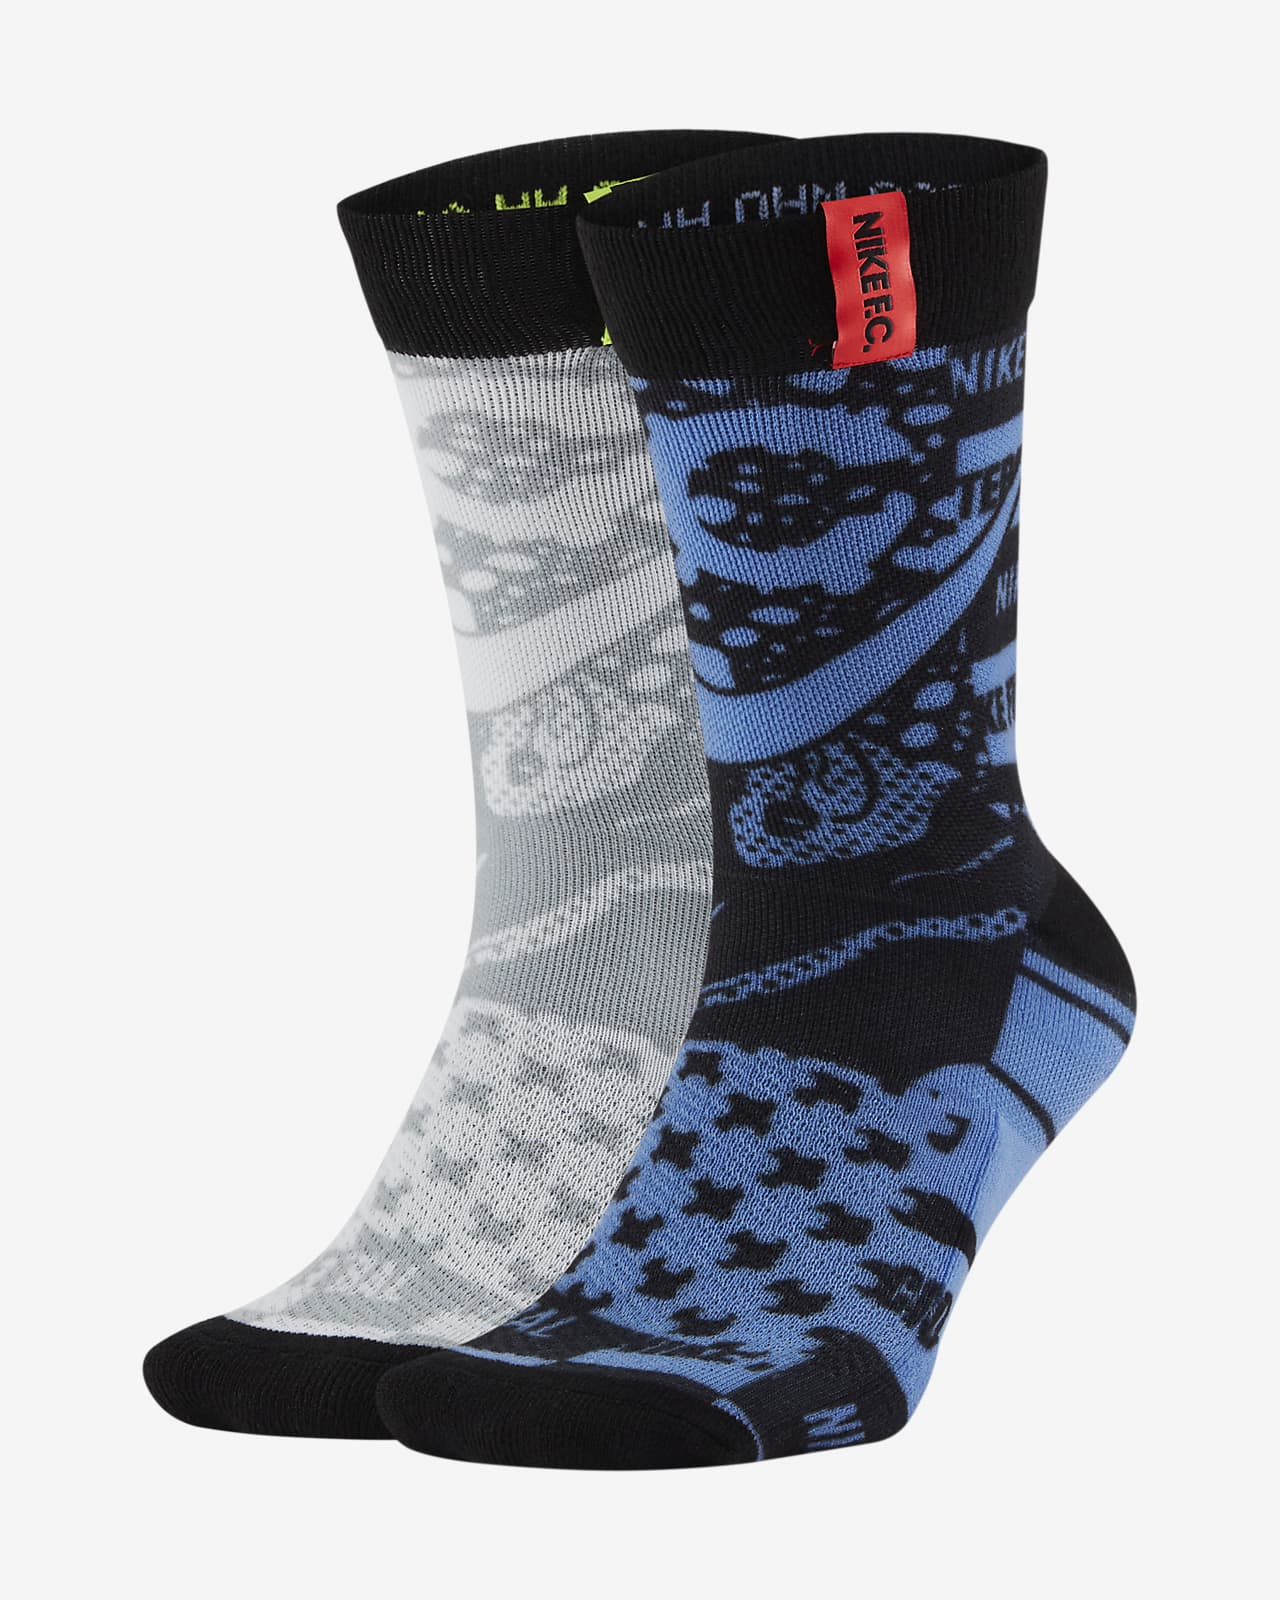 Nike F.C. Graphic Football Crew Socks (2 Pairs)